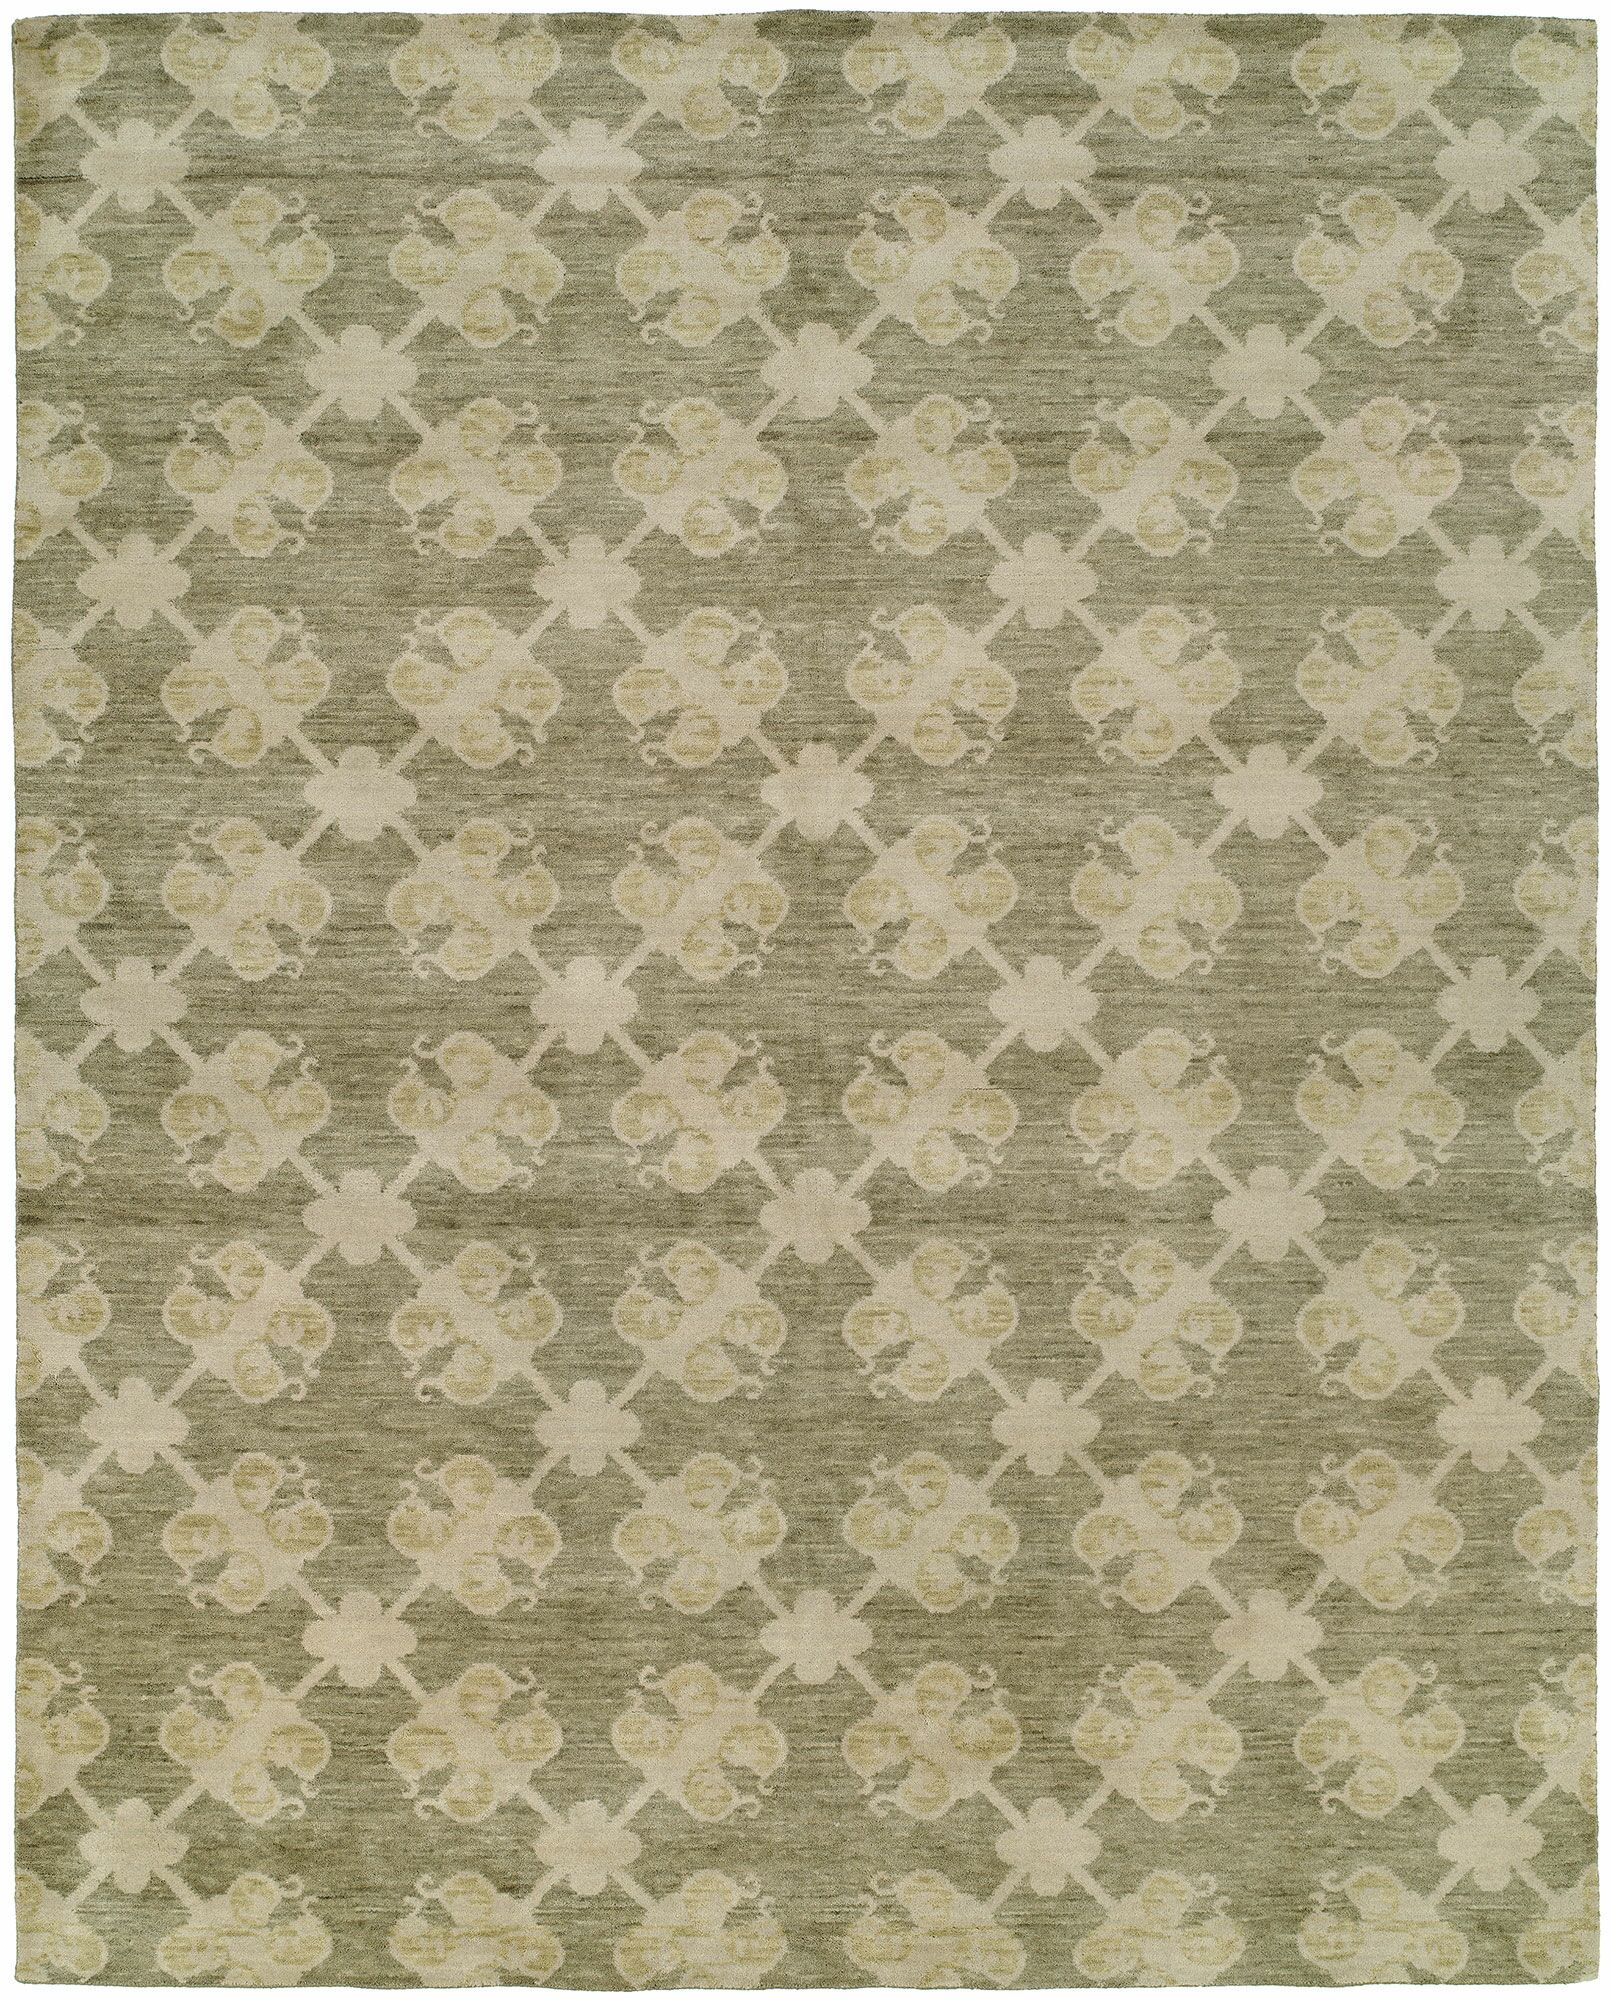 Candide Hand-Knotted Wool Green/Beige Area Rug Rug Size: Rectangle 4' x 6'